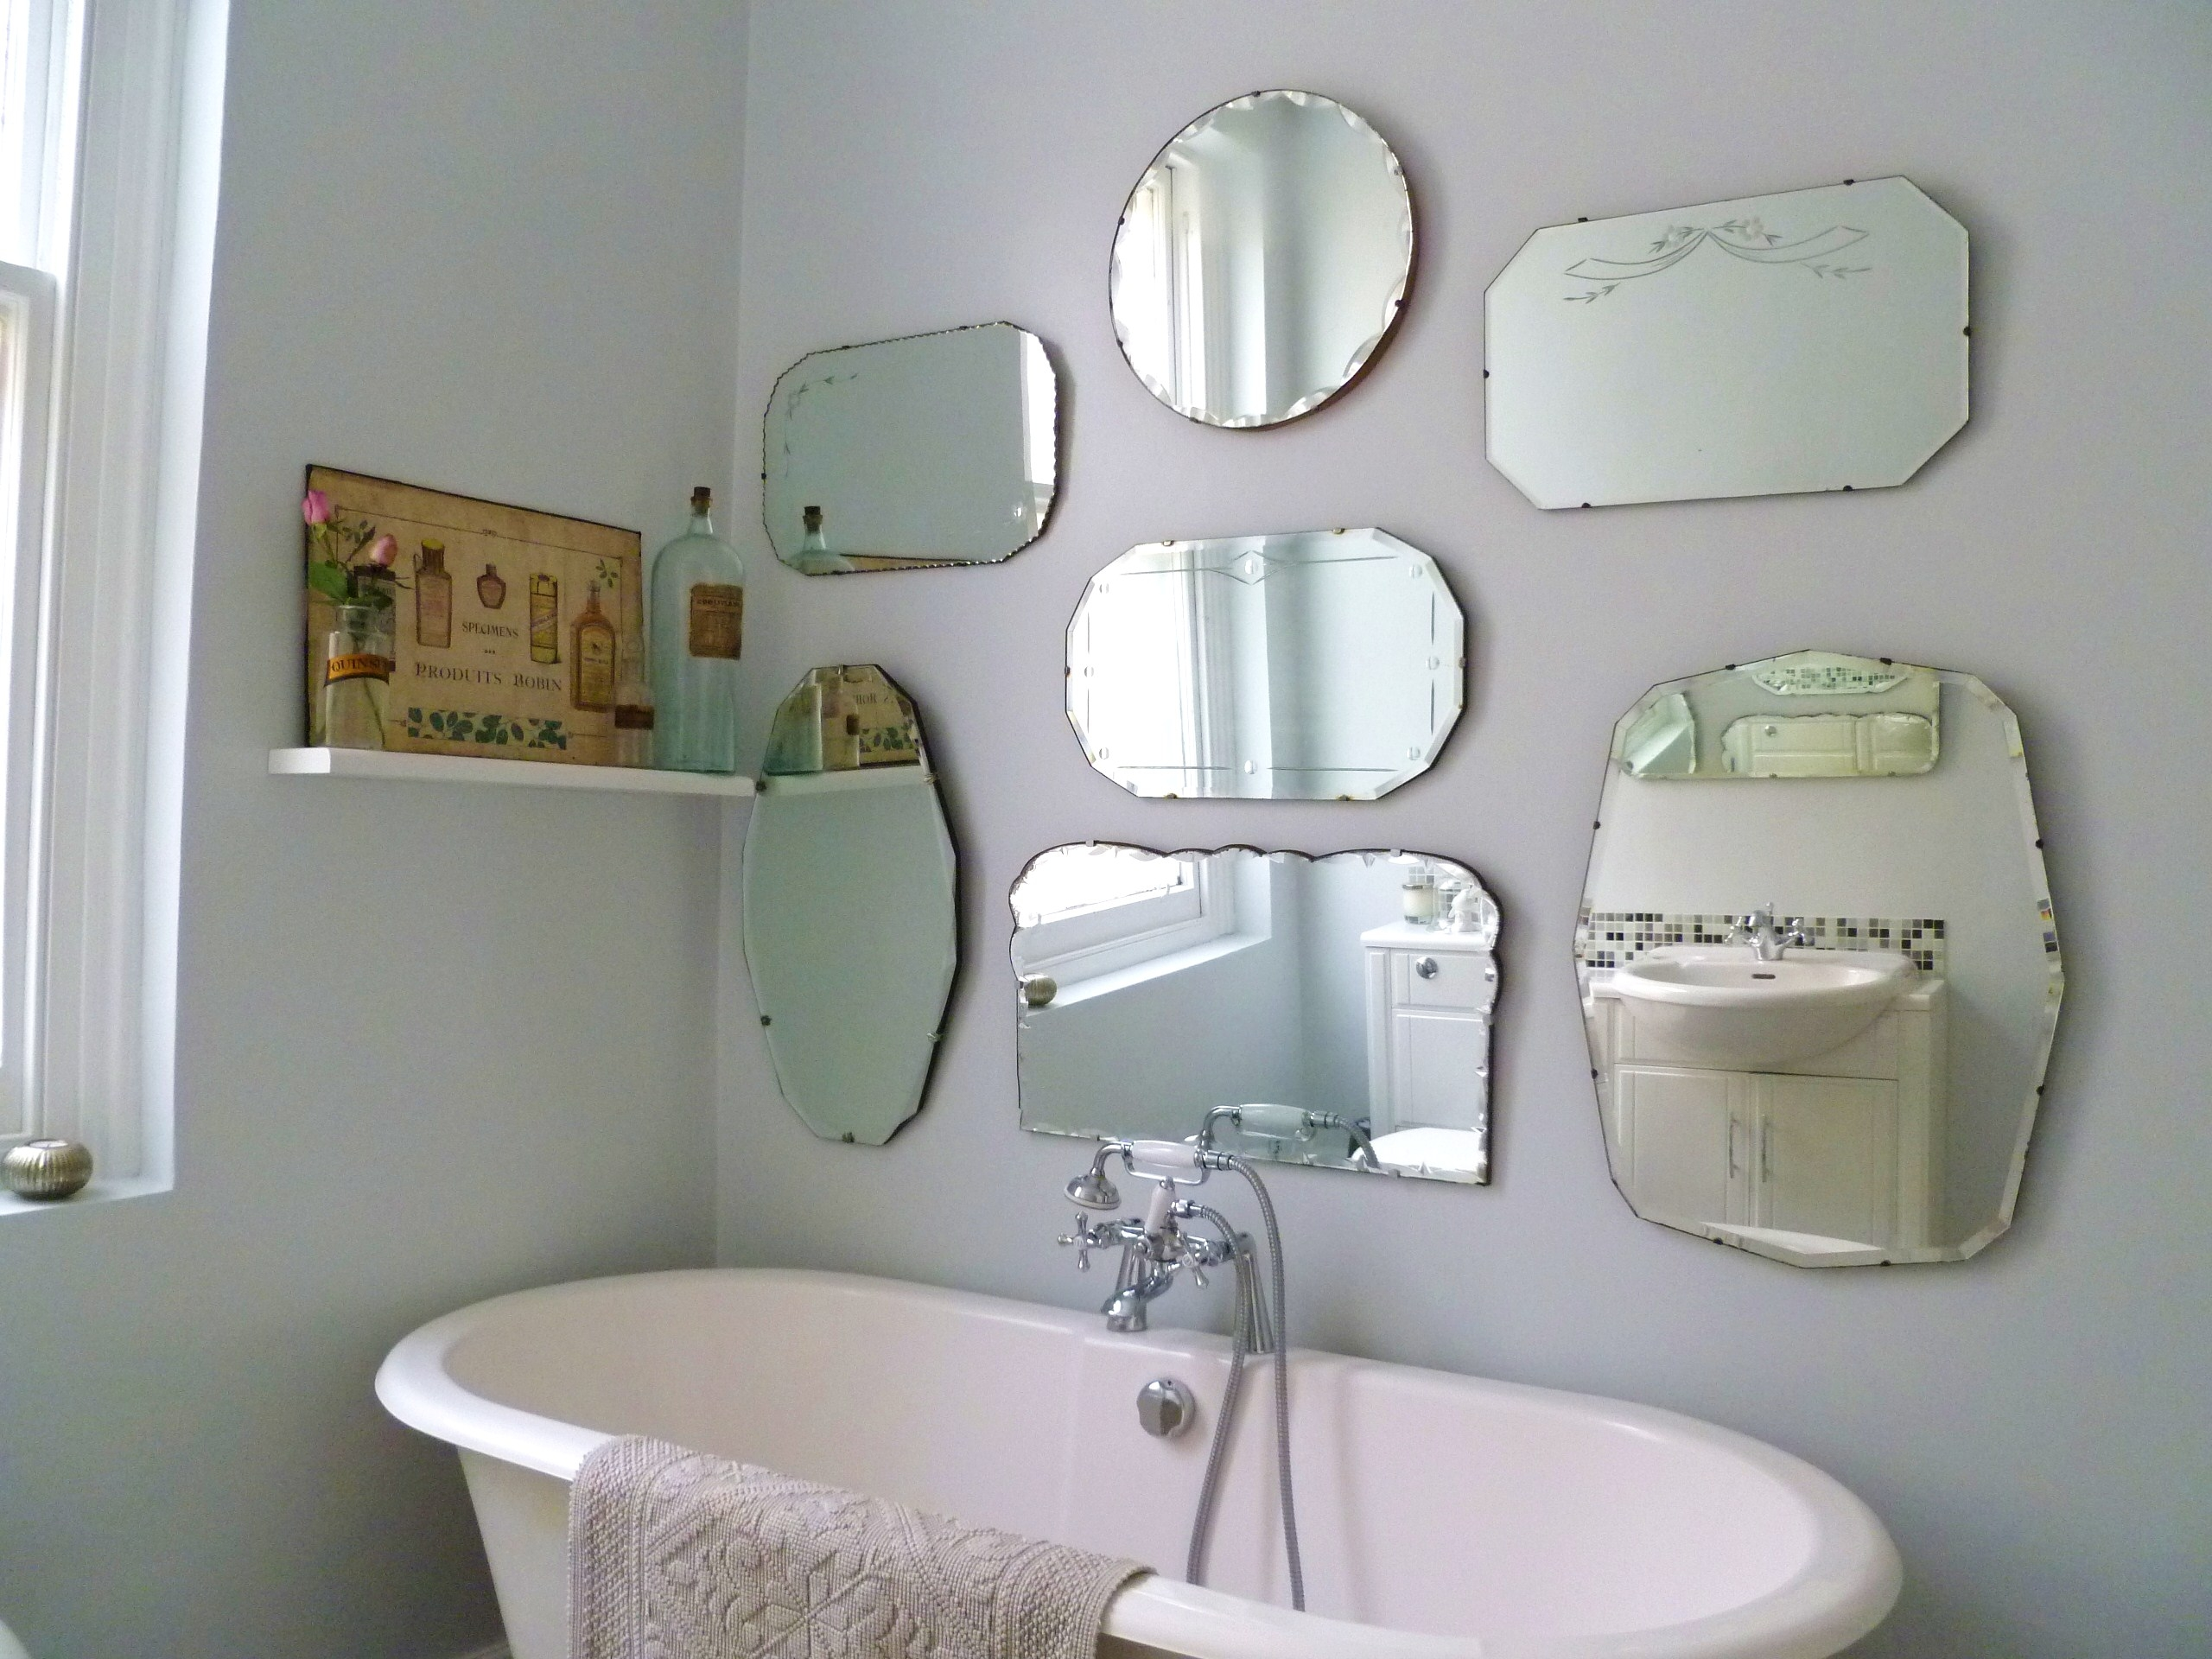 Stunning Ideas Vintage Wall Mirrors Pretty Decorative Vintage For Vintage Wall Mirrors For Sale (Image 10 of 15)